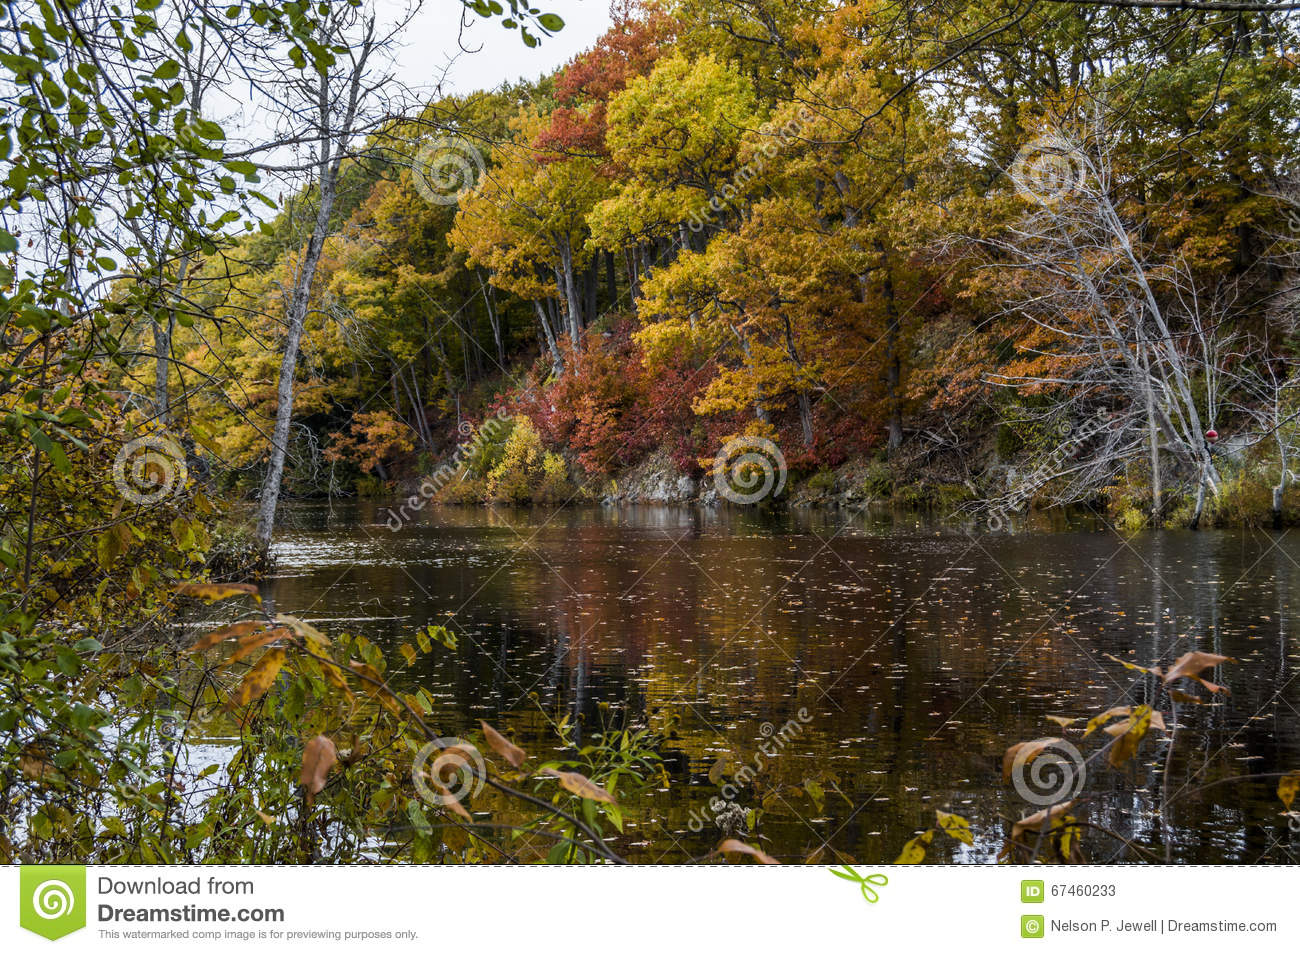 Fall Trees Show Splendor Over River Stock Image - Image of ...